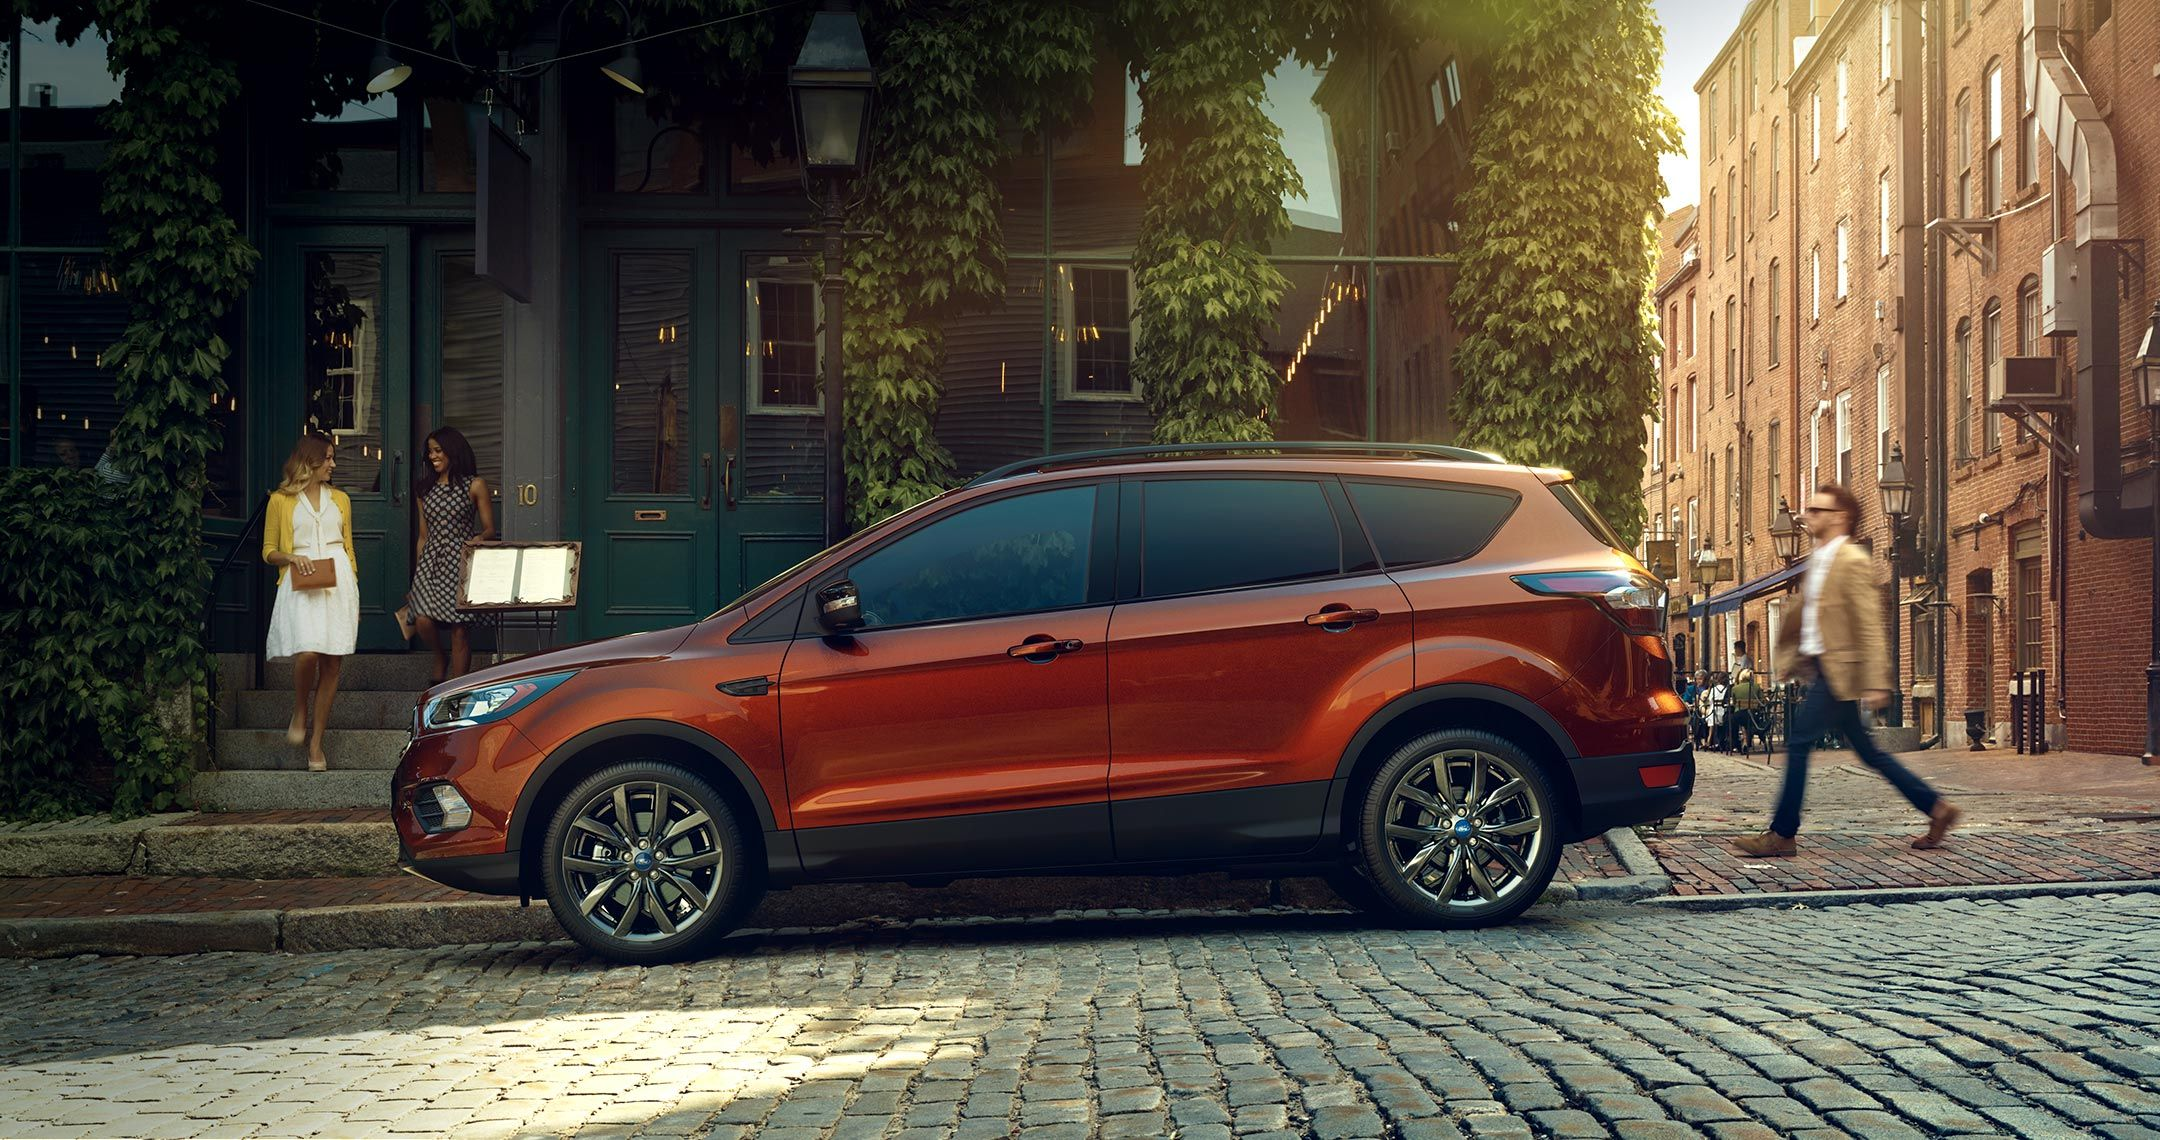 Ford new cars trucks suvs hybrids crossovers ford vehicles